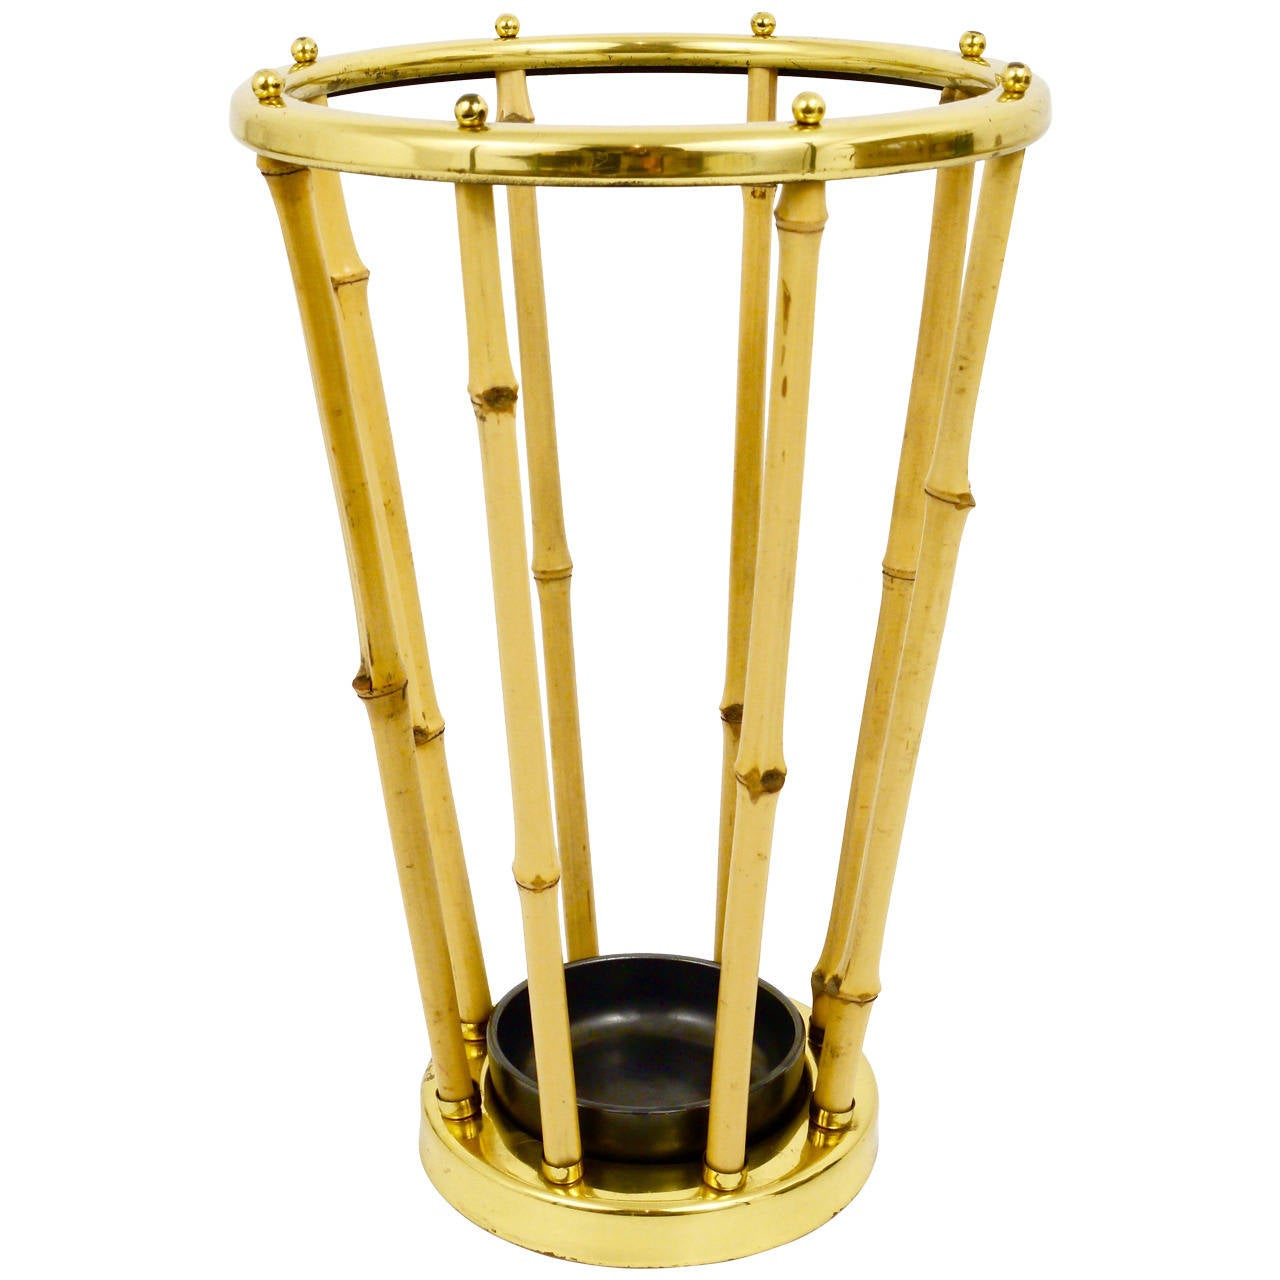 Austrian Modernist Bamboo Brass Umbrella Stand in the Carl Aubock Style, 1950s